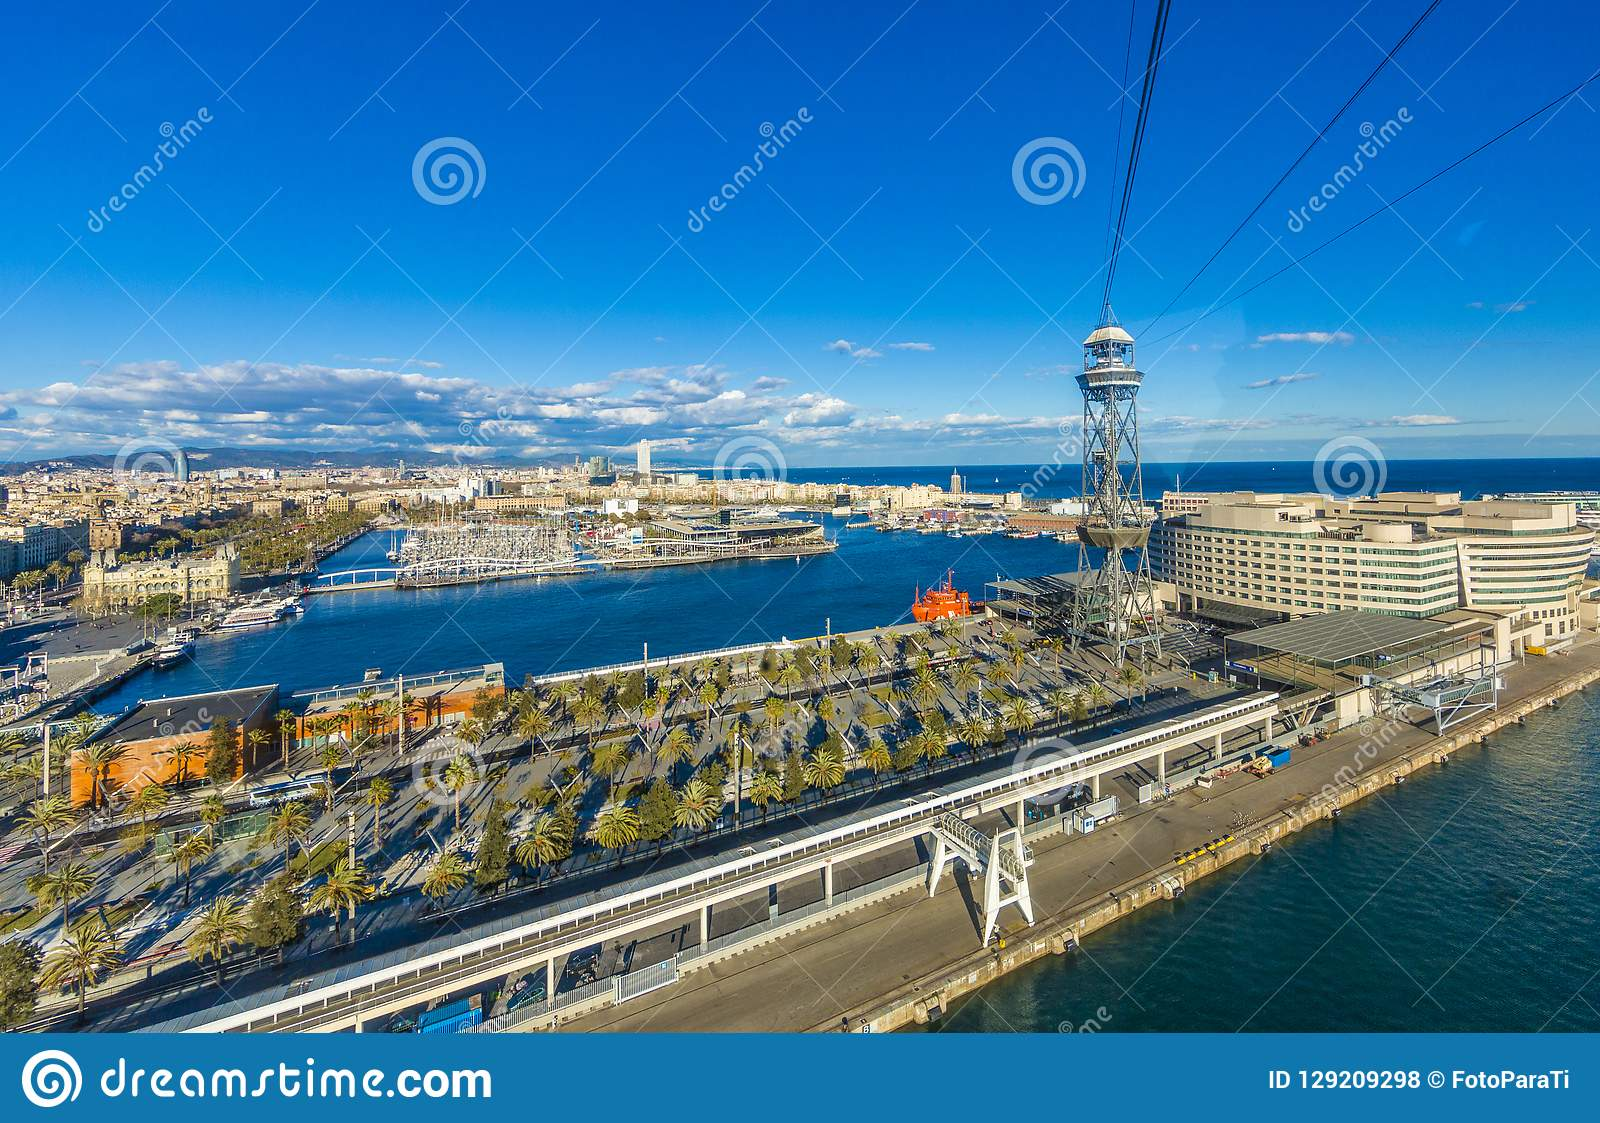 View of the port of Barcelona Spain from the cable car with its palm trees and the ocean